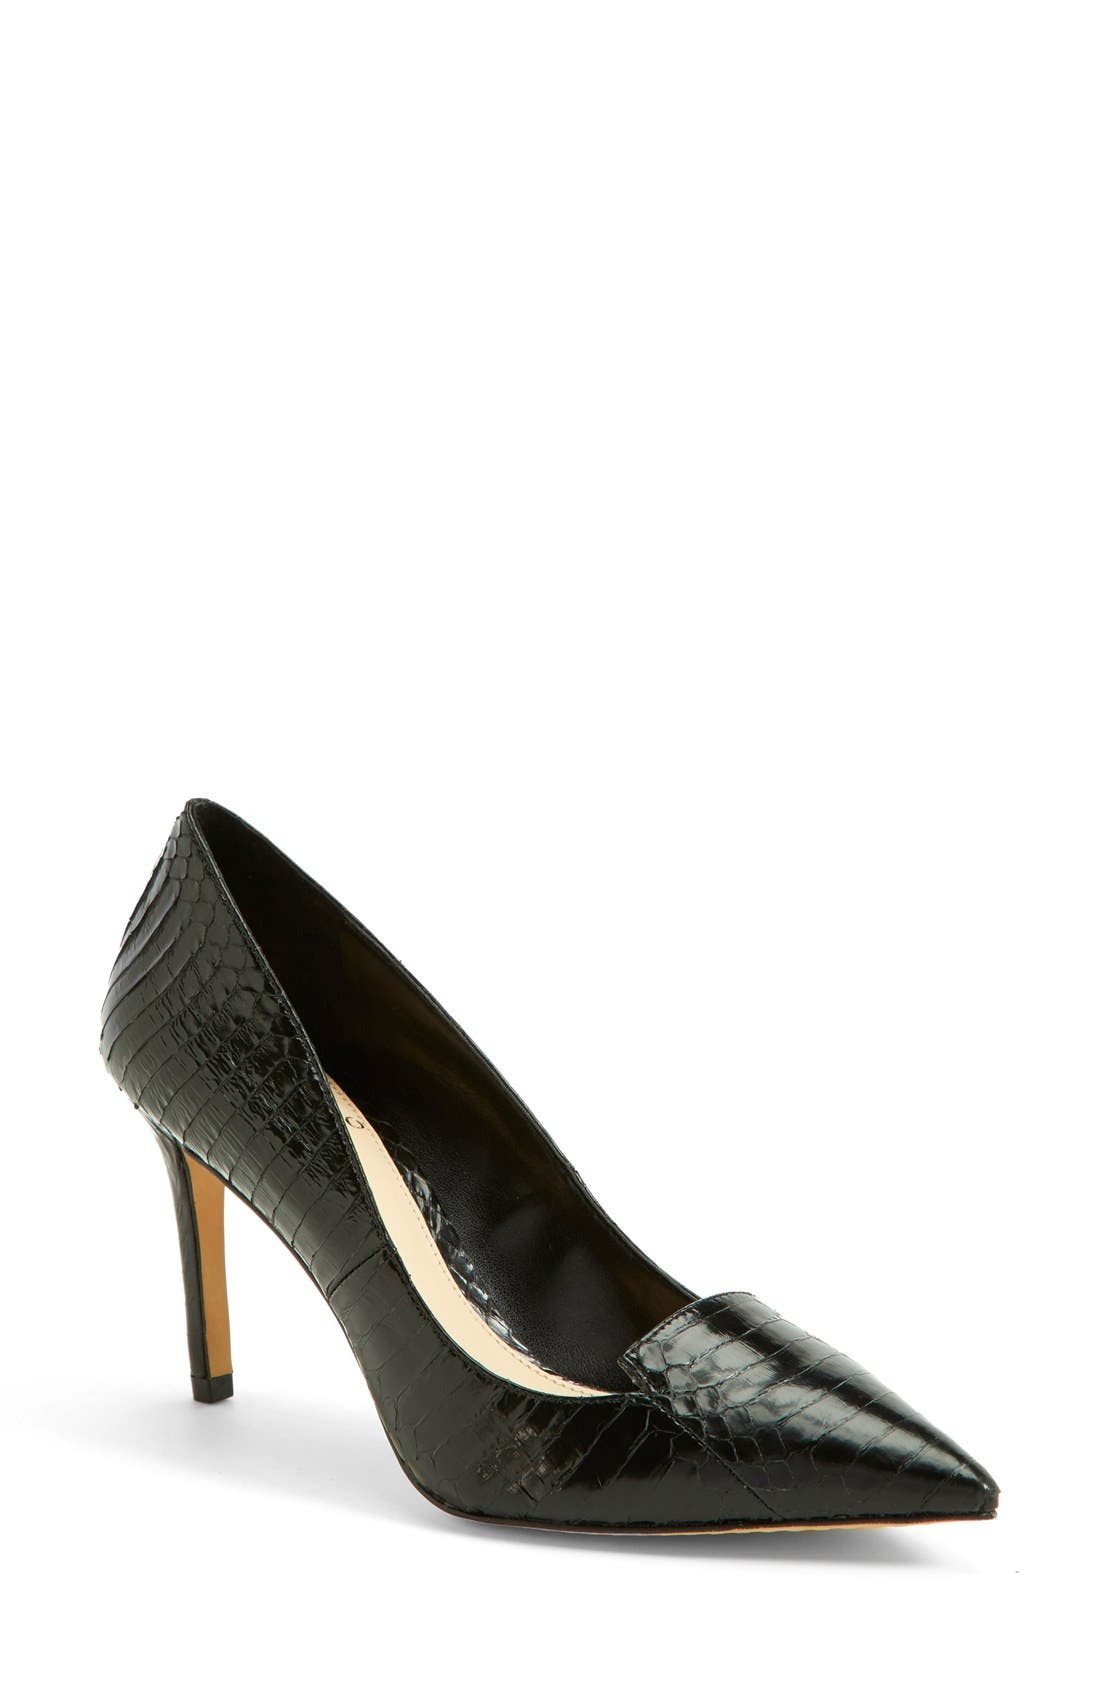 Main Image - Vince Camuto 'Panan' Pump (Women) (Nordstrom Exclusive)